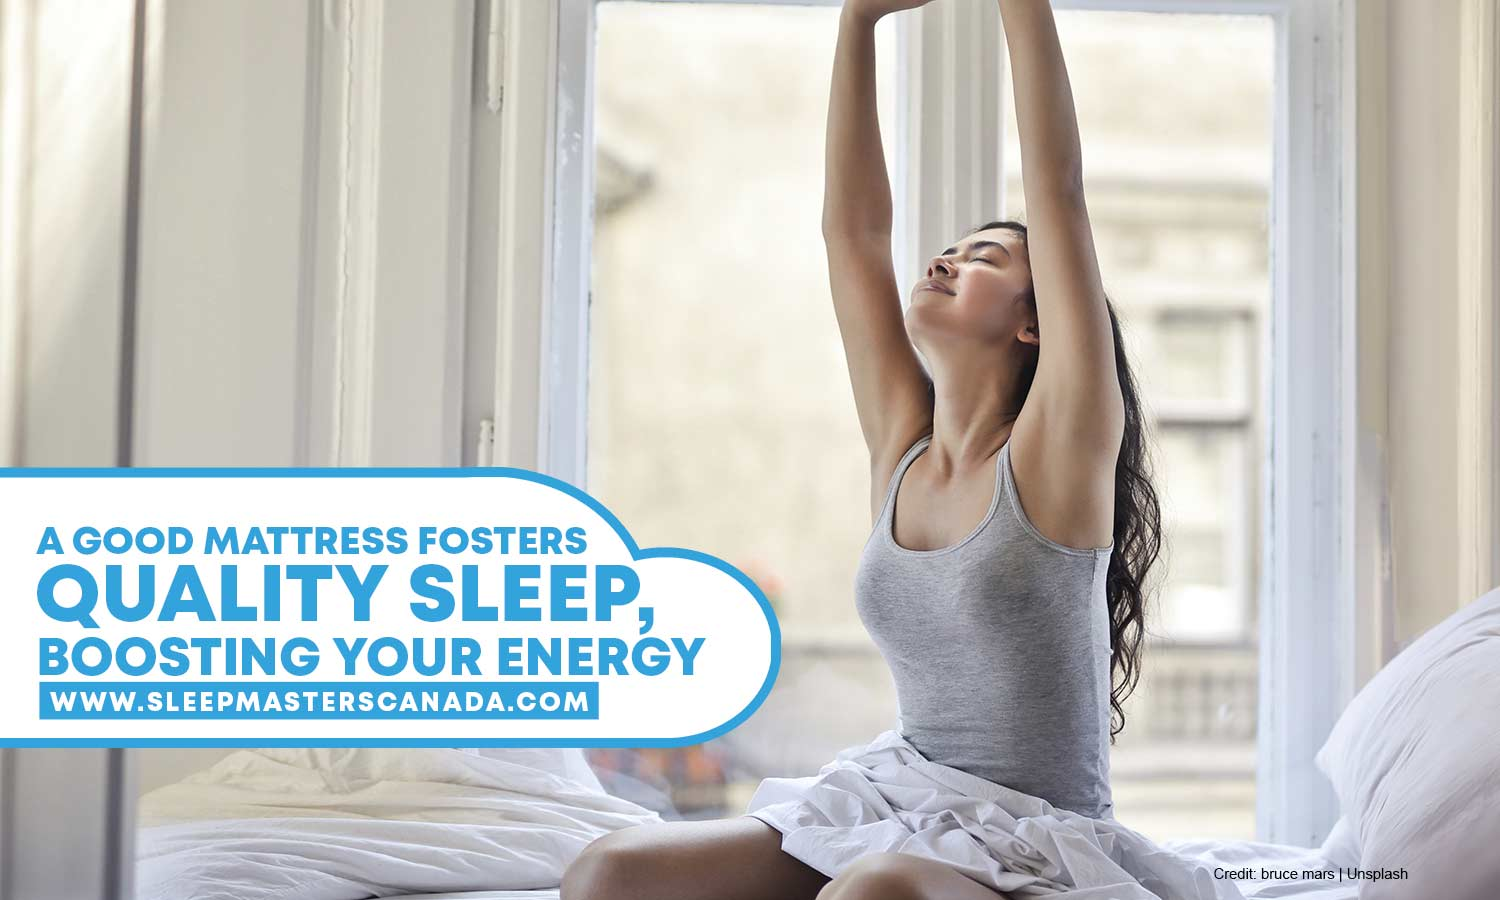 A good mattress fosters quality sleep, boosting your energy